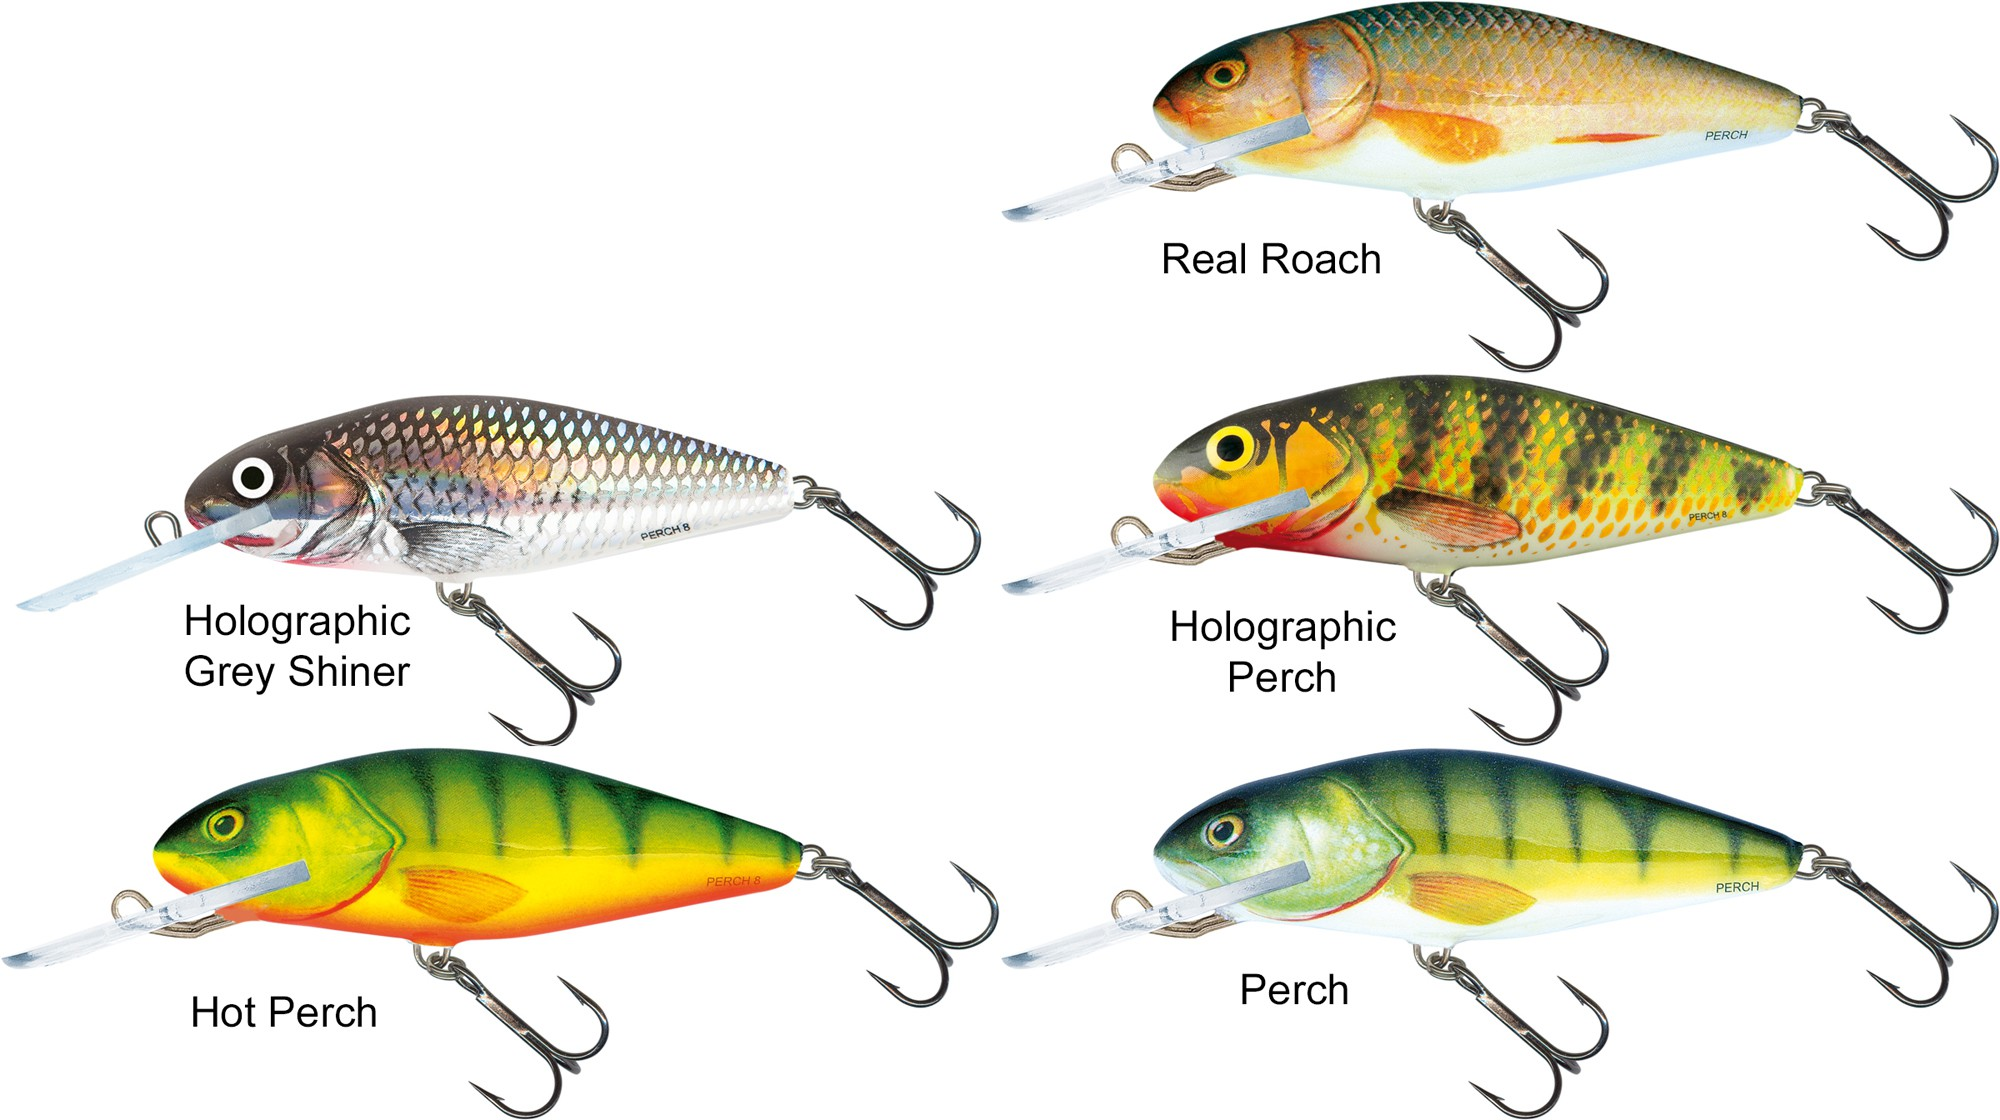 Salmo Fatso lure pullbait RPH real perch